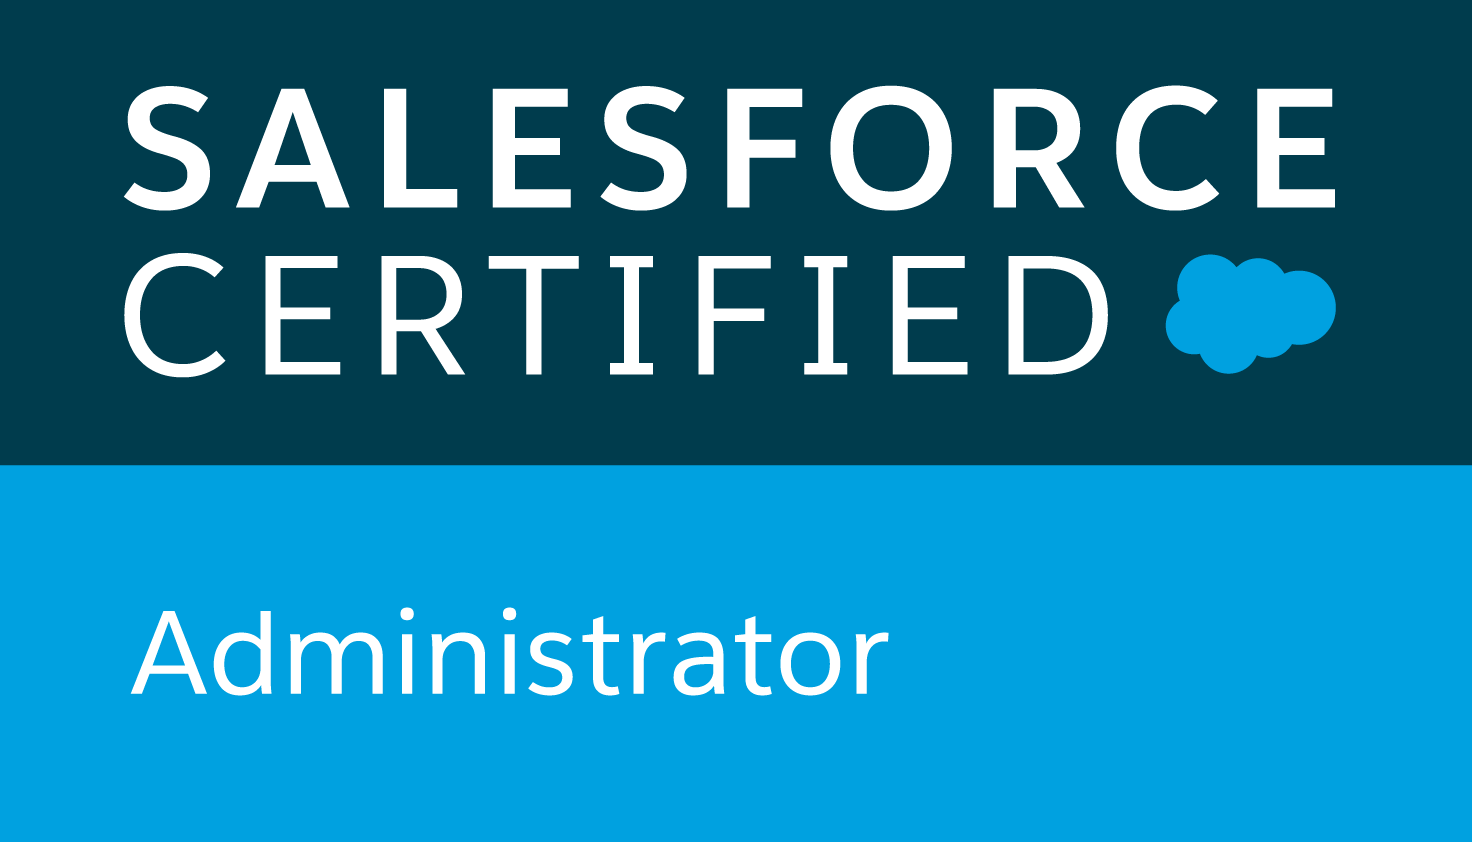 Certified Salesforce Administrator